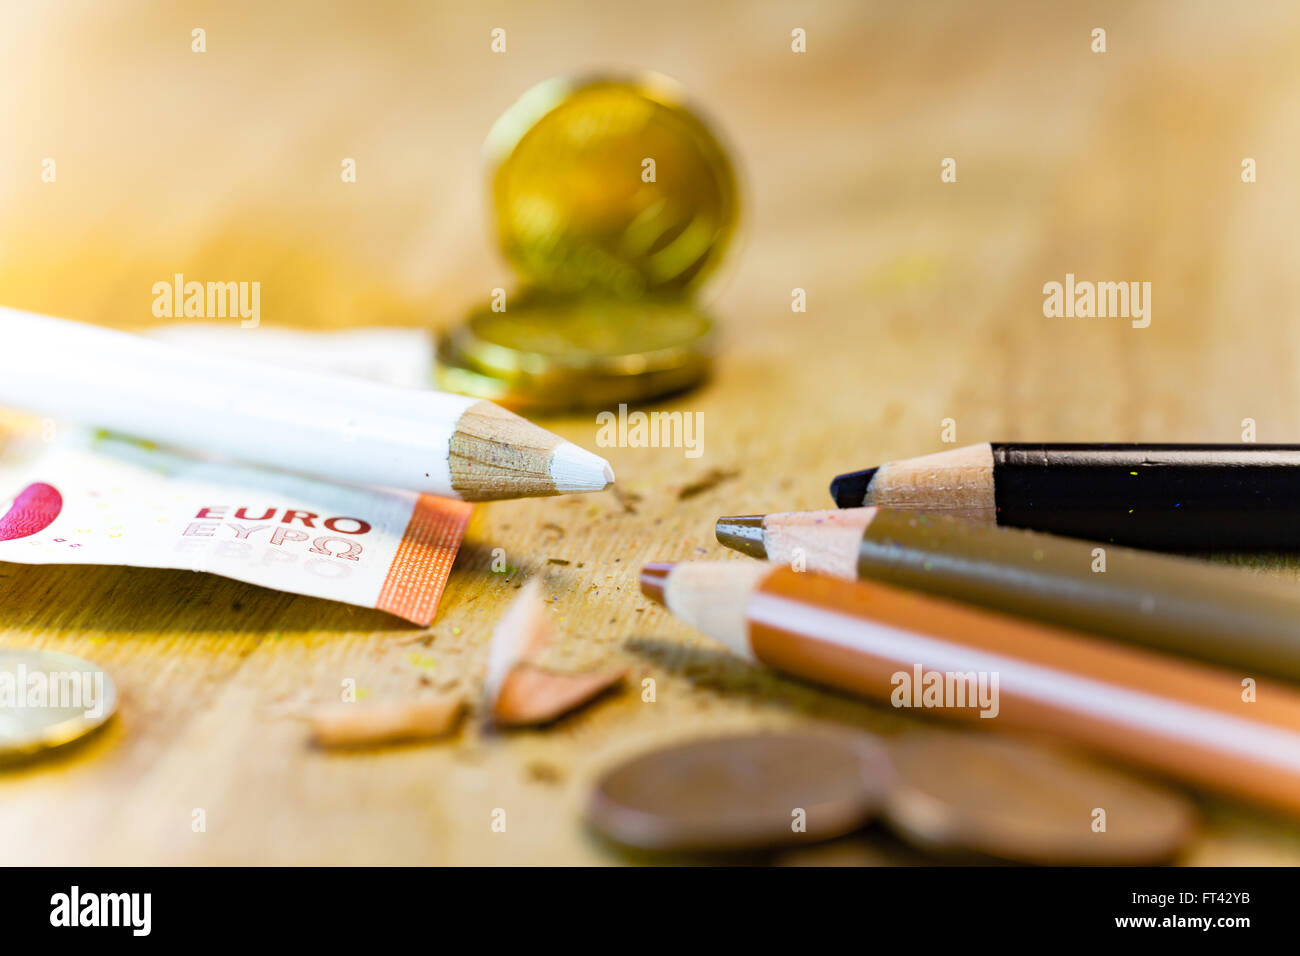 Racism and Money pencil concept - Stock Image